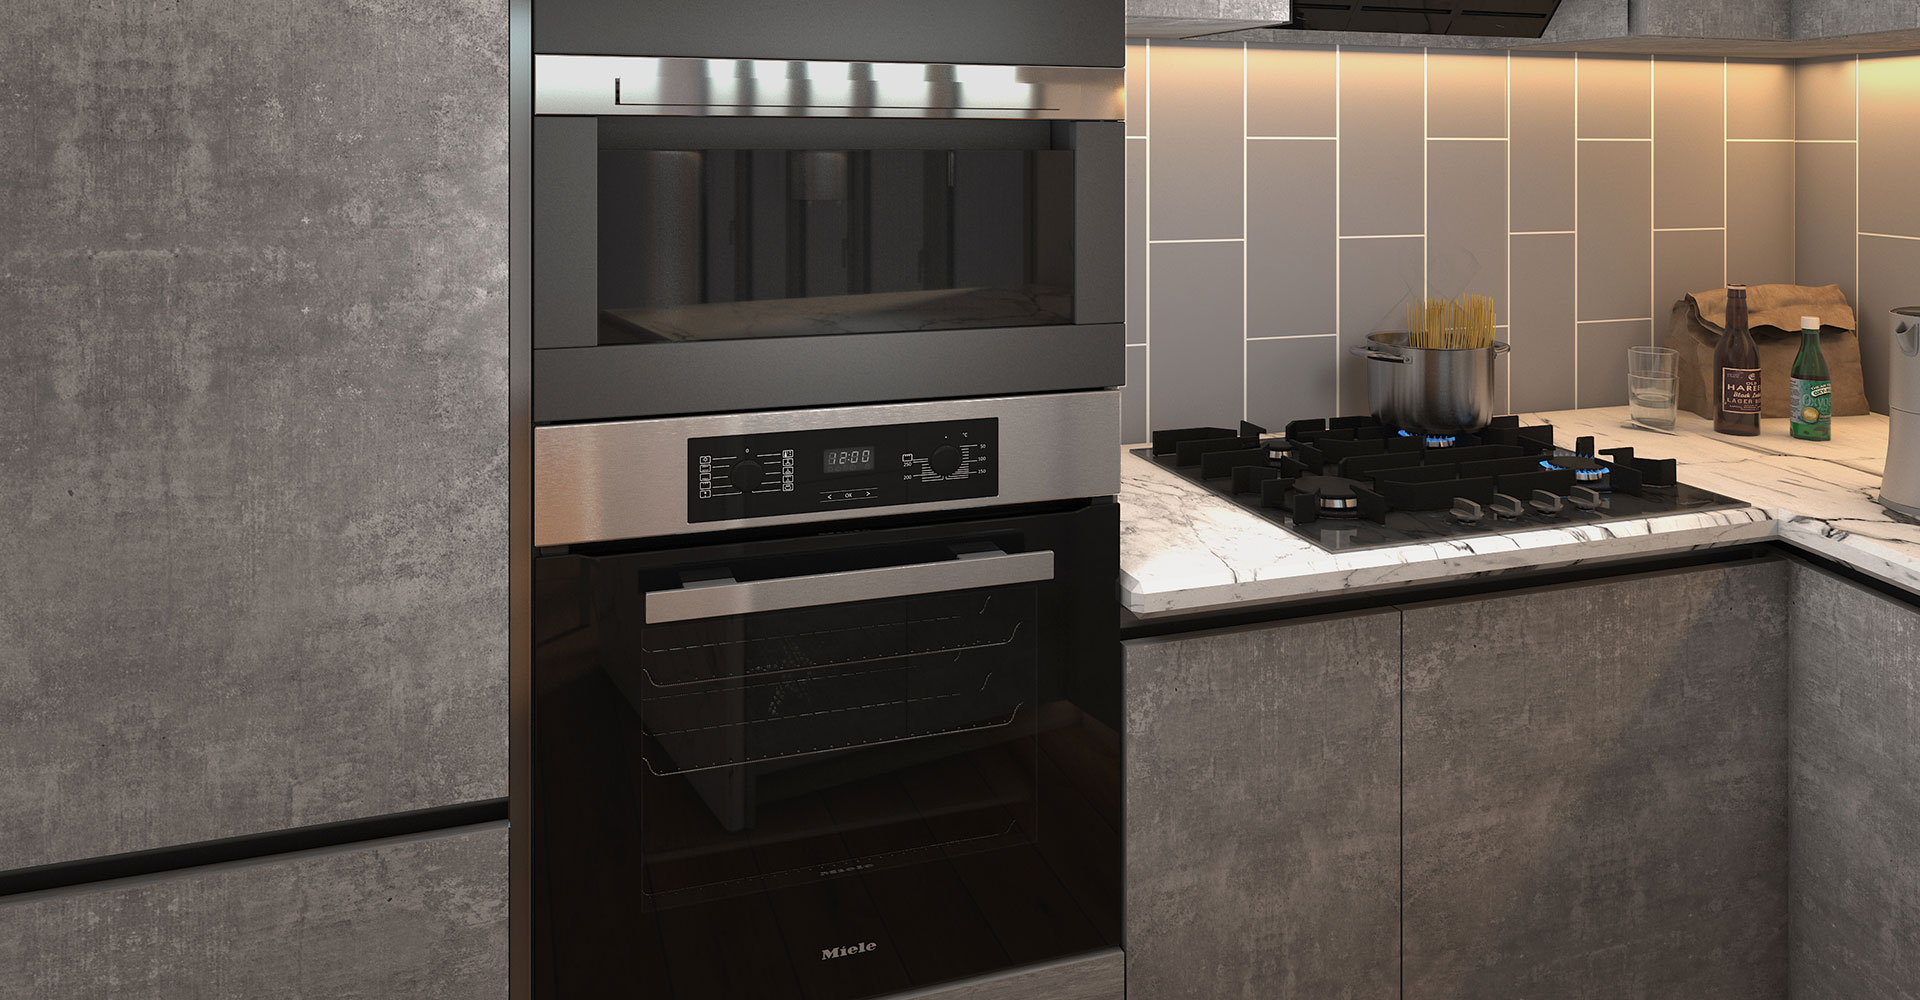 Modern Kitchen Appliances You Must Have in Your Kitchens